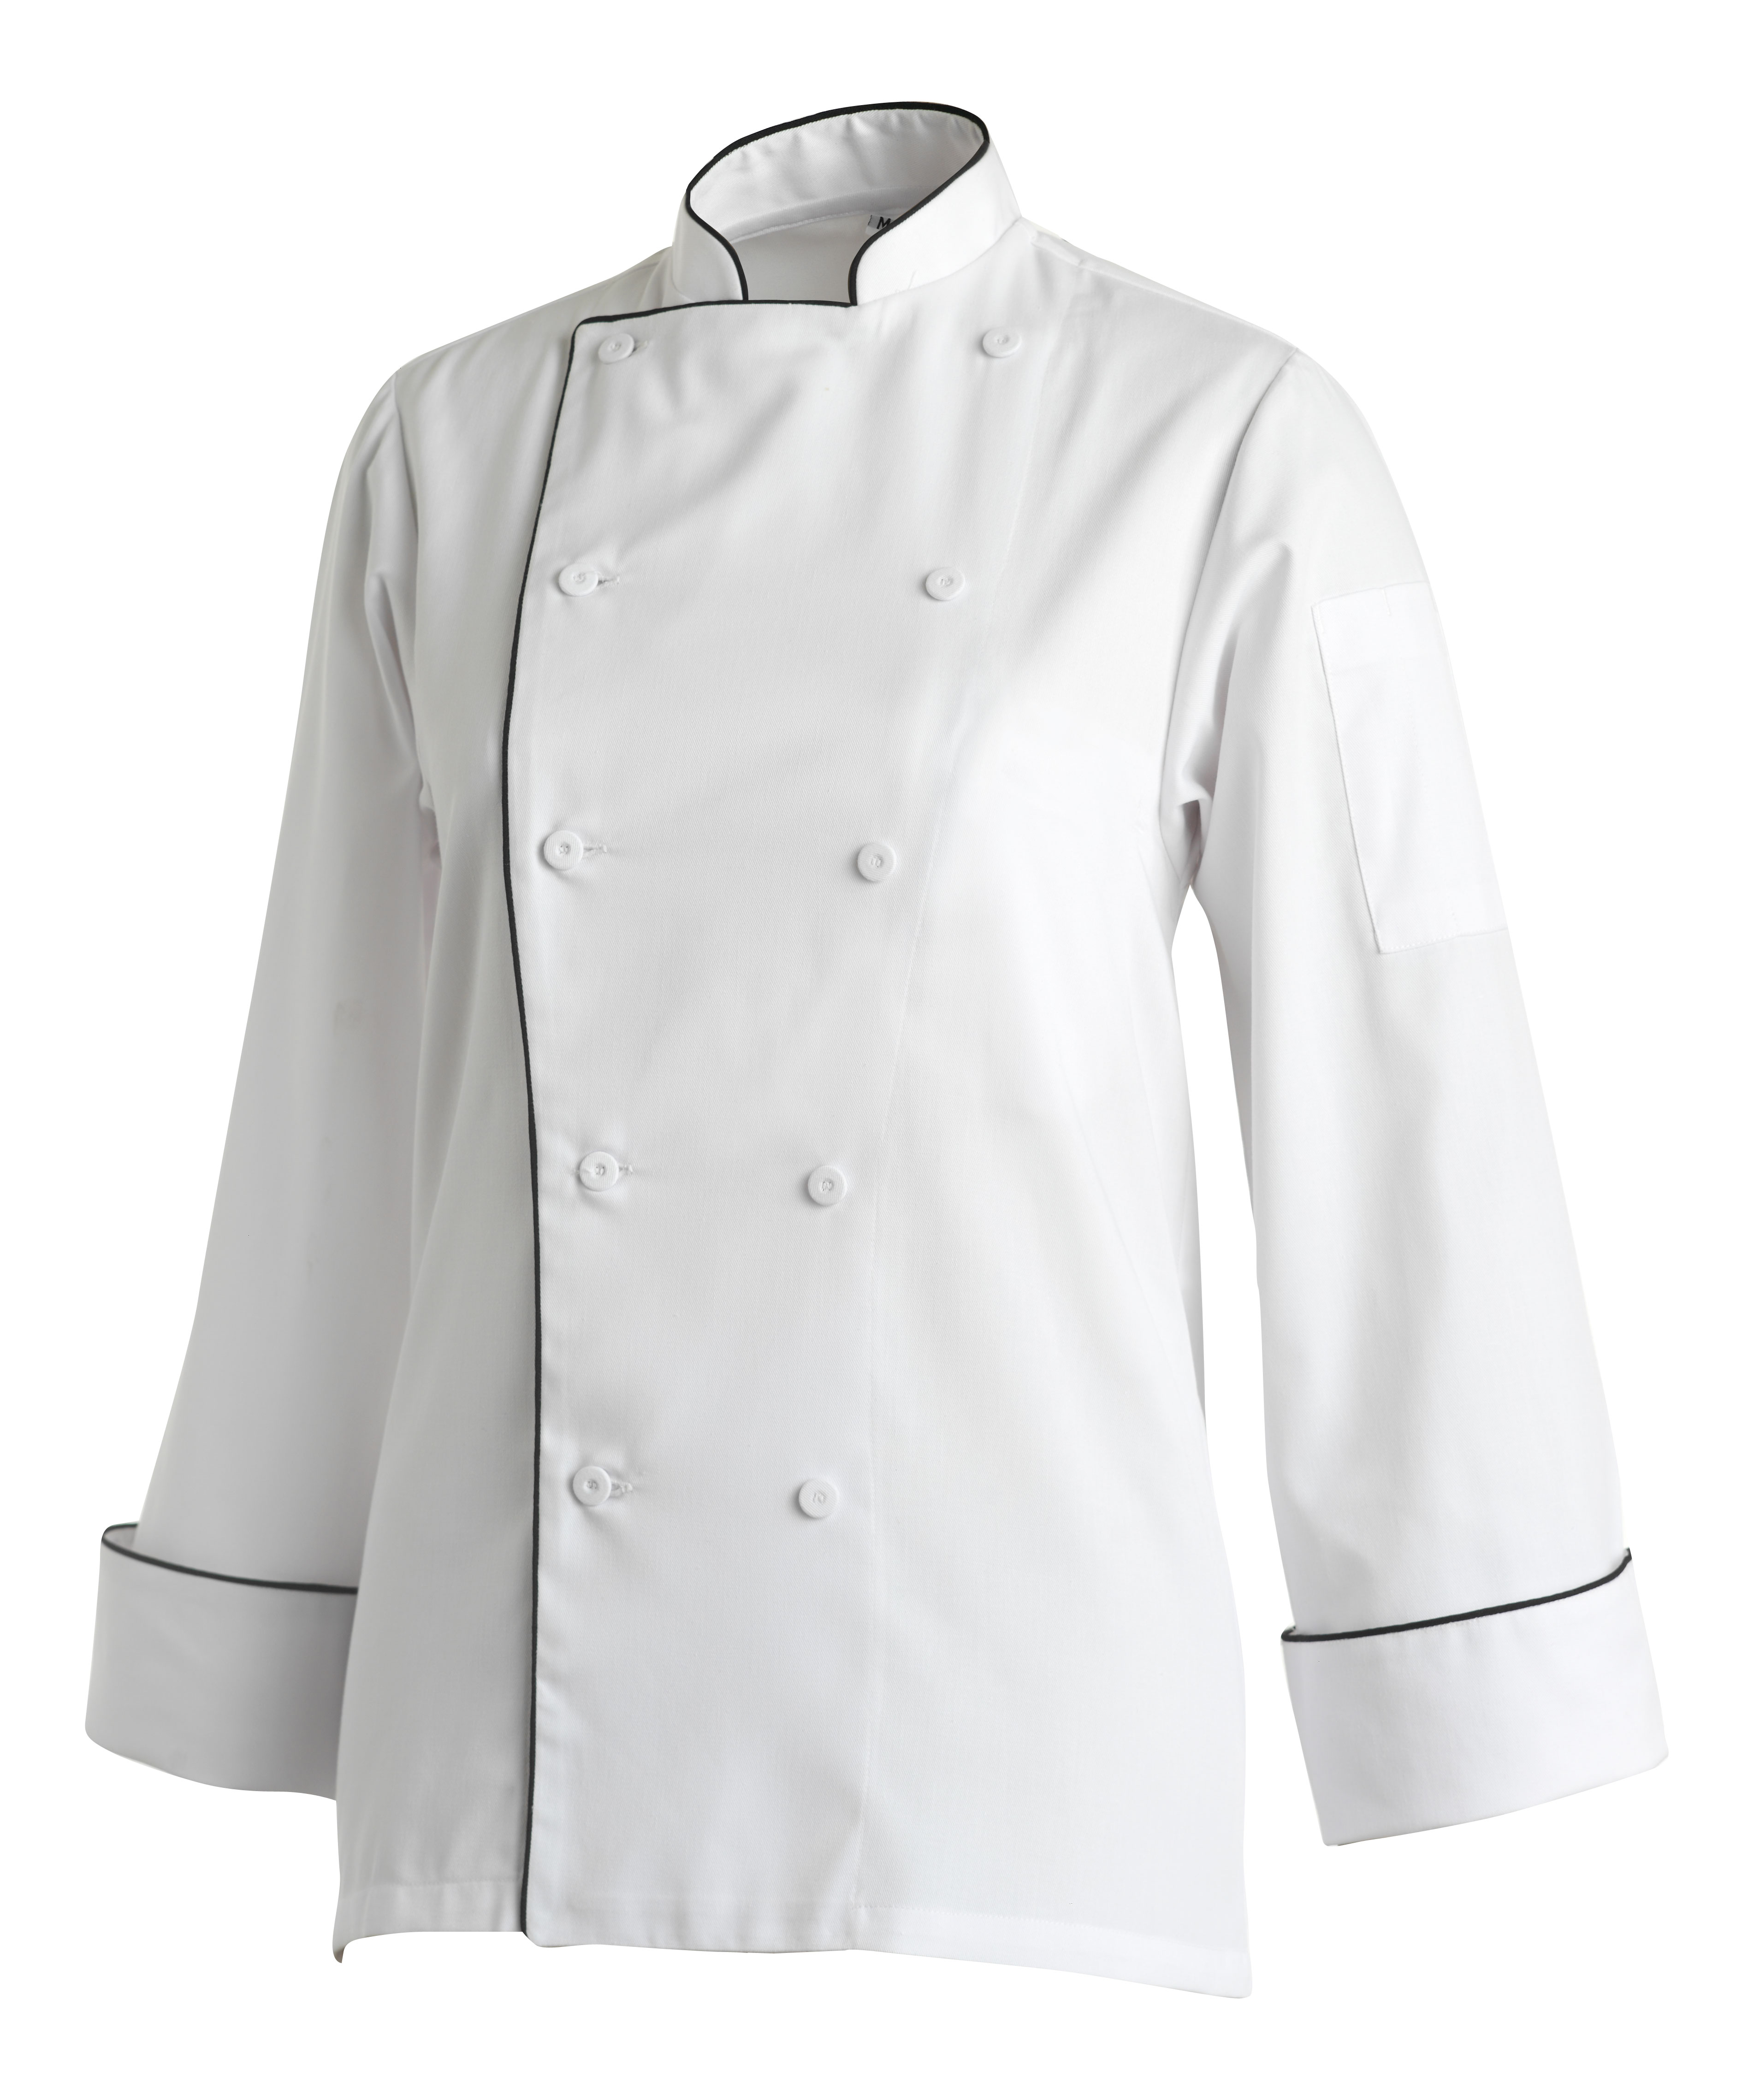 CHEFS UNIFORM LADIES BASIC JACKET - MEDIUM